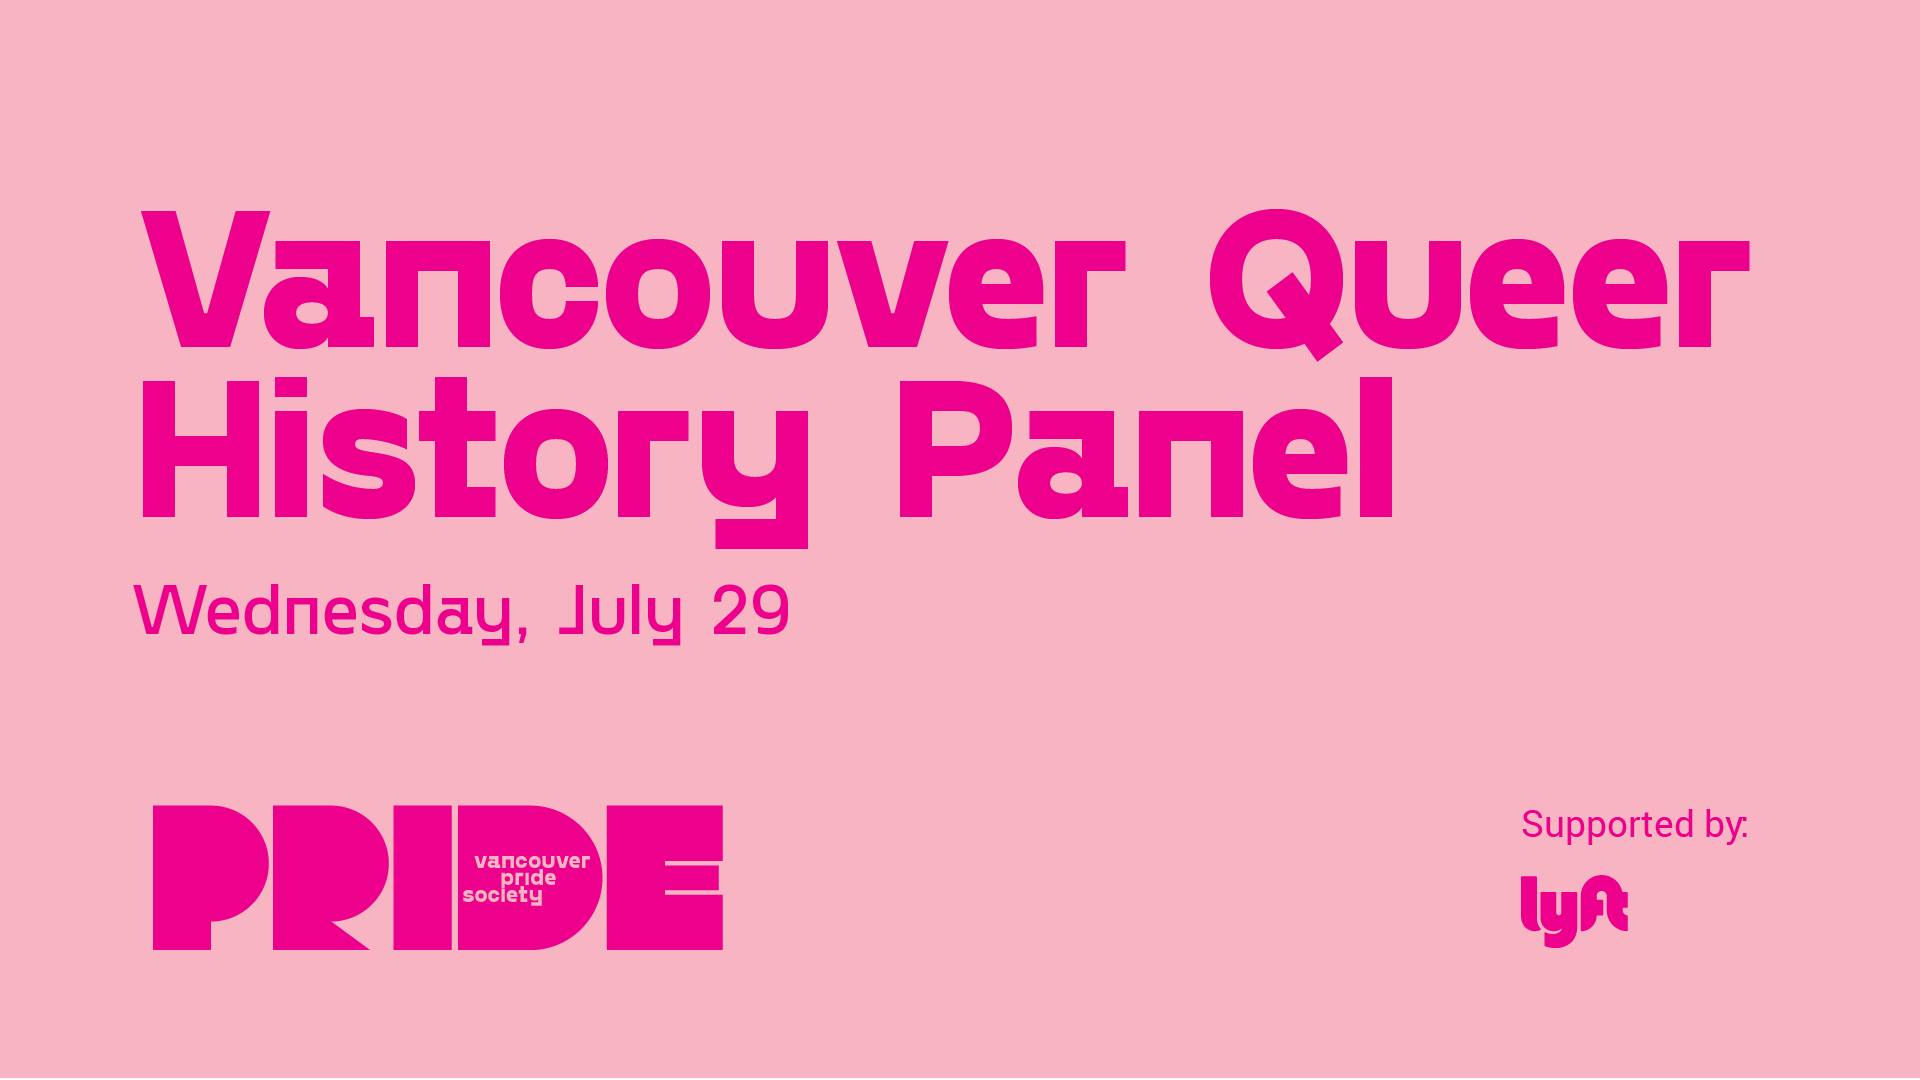 "A pale pink background has the words ""Vancouver Queer History Panel"" in bright pink. Below in smaller letters is ""Wednesday, July 29."" Pride's new logo which includes the word PRIDE in a bold, stylized font with the words PRIDE SOCIETY inside the letter D is on the bottom left. Text reading ""Supported by"" is followed by the Lyft logo."